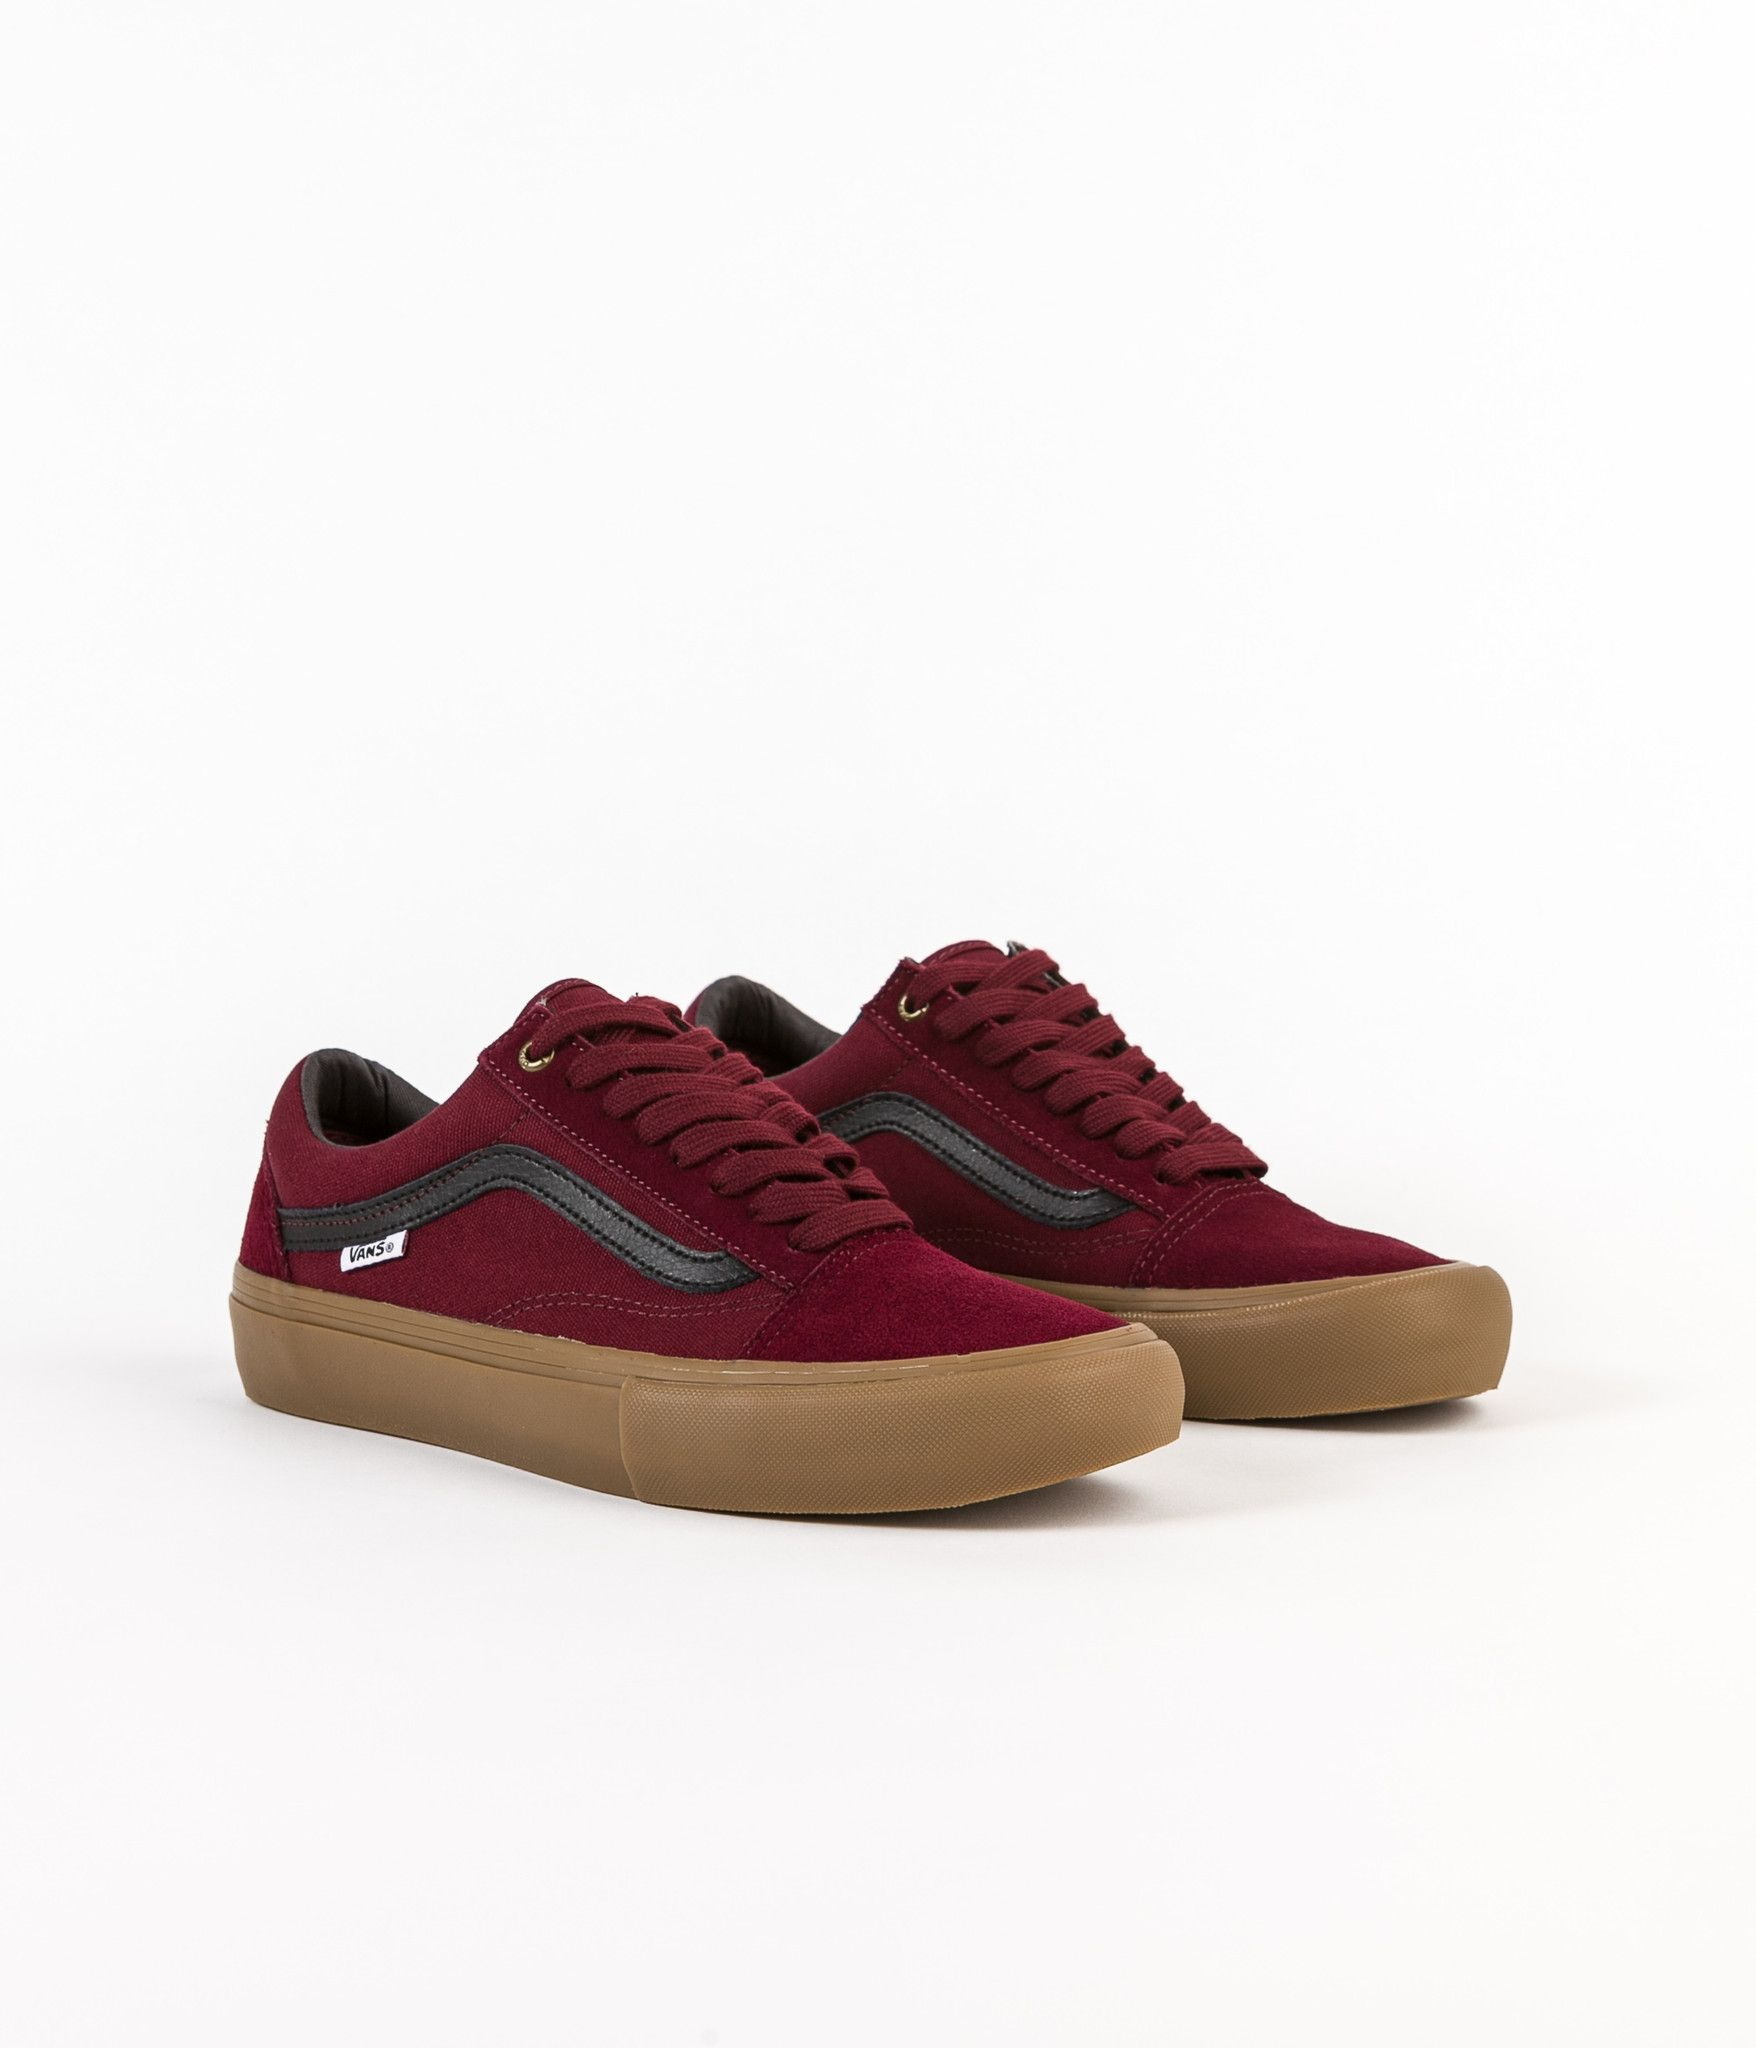 203564b662 Vans Old Skool Pro Shoes - Port   Black   Gum